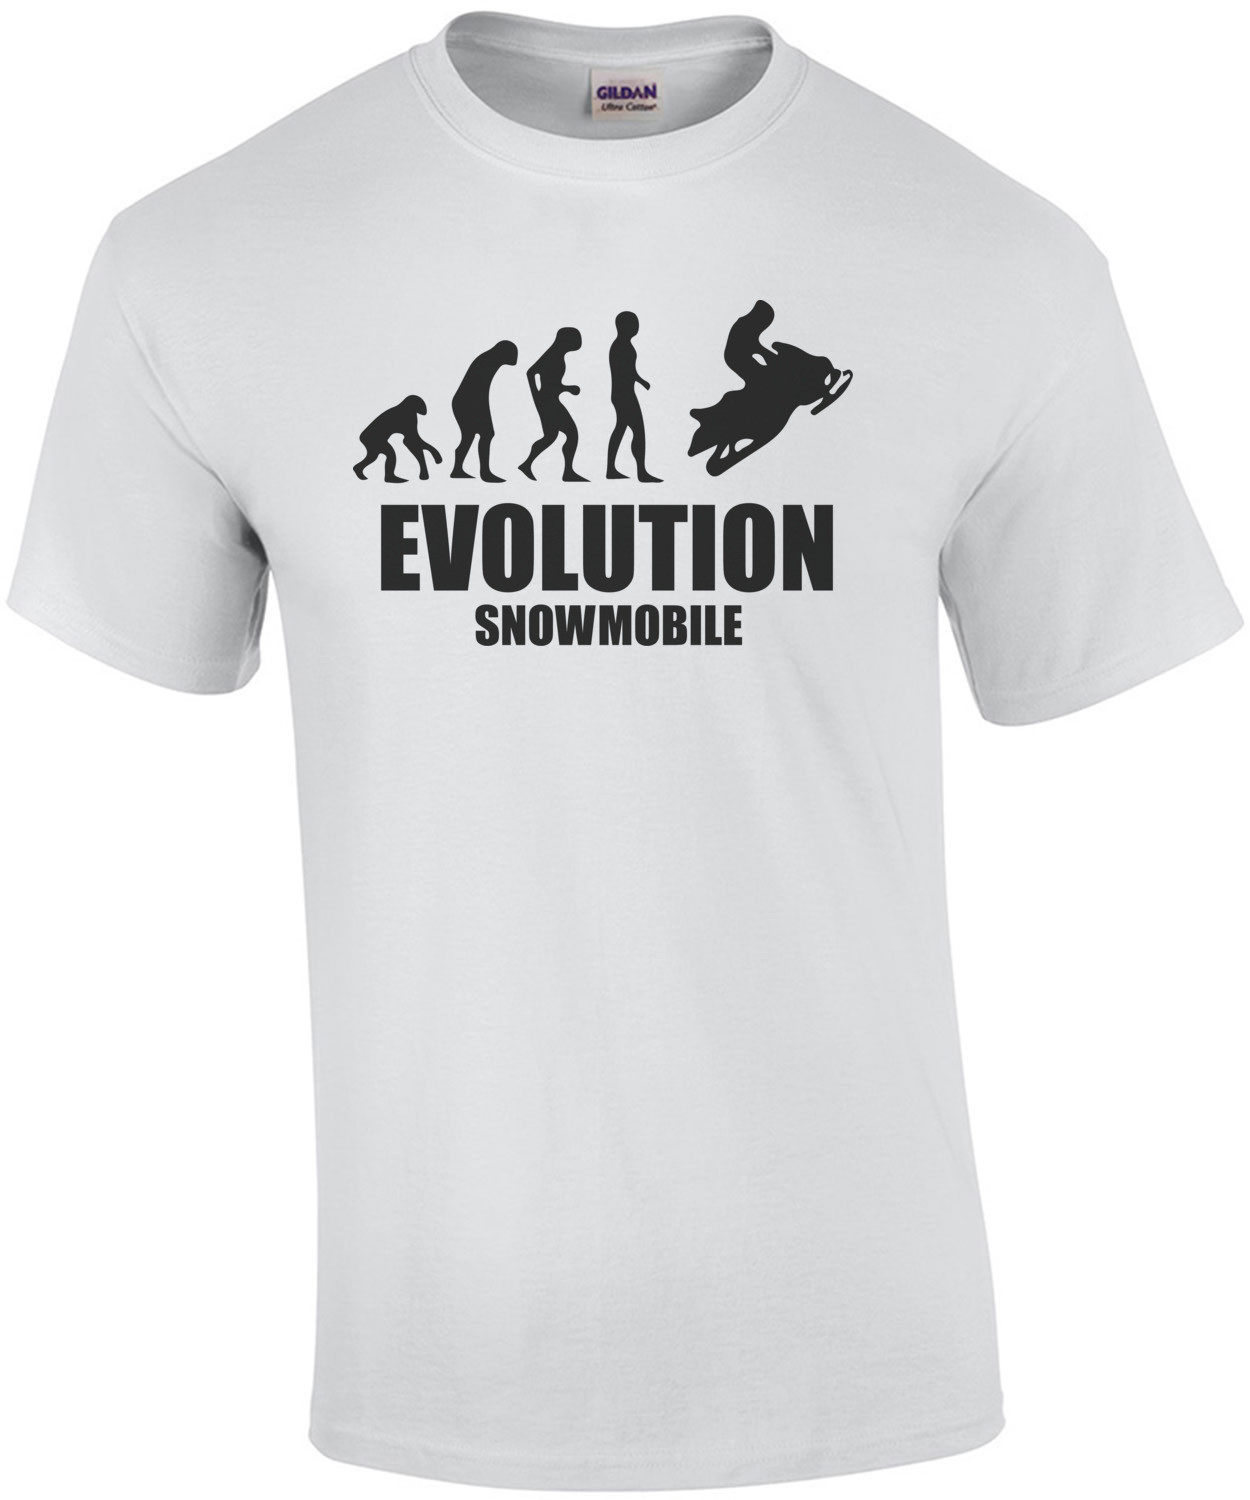 Evolution Snowmobile T-Shirt